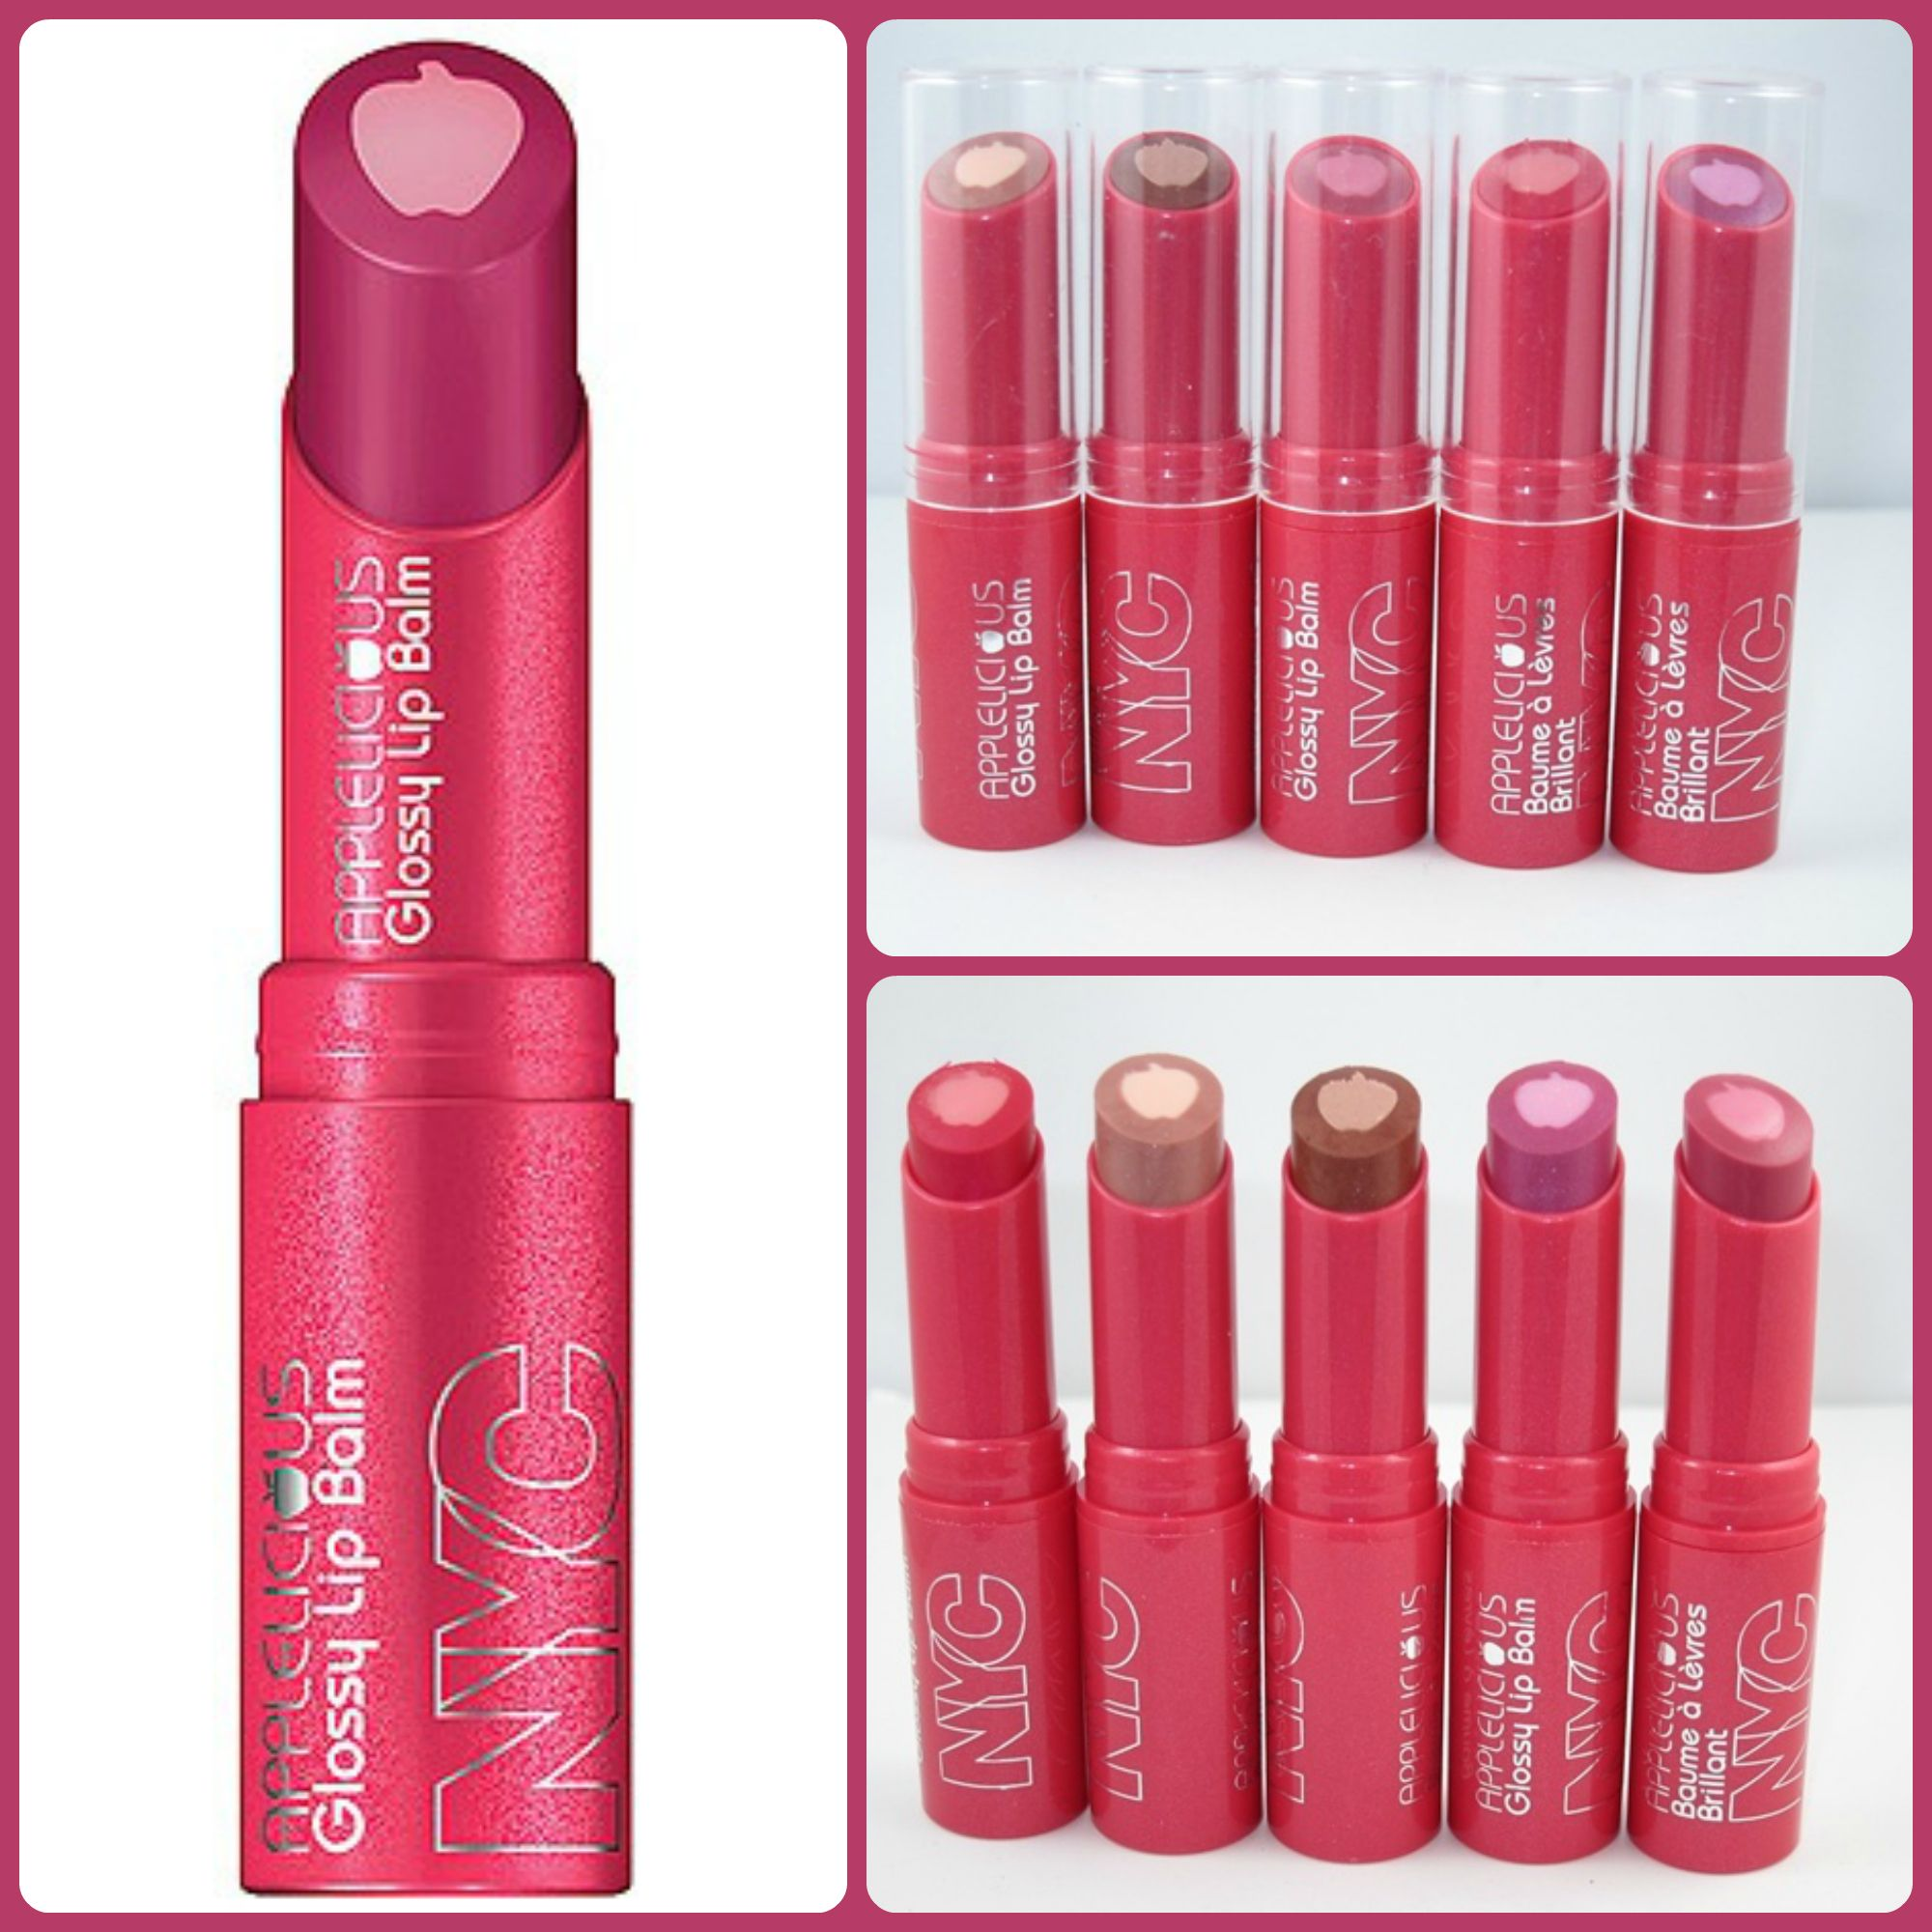 All Of The Nyc New York Color Nyc Lip Balm Varieties Blushing